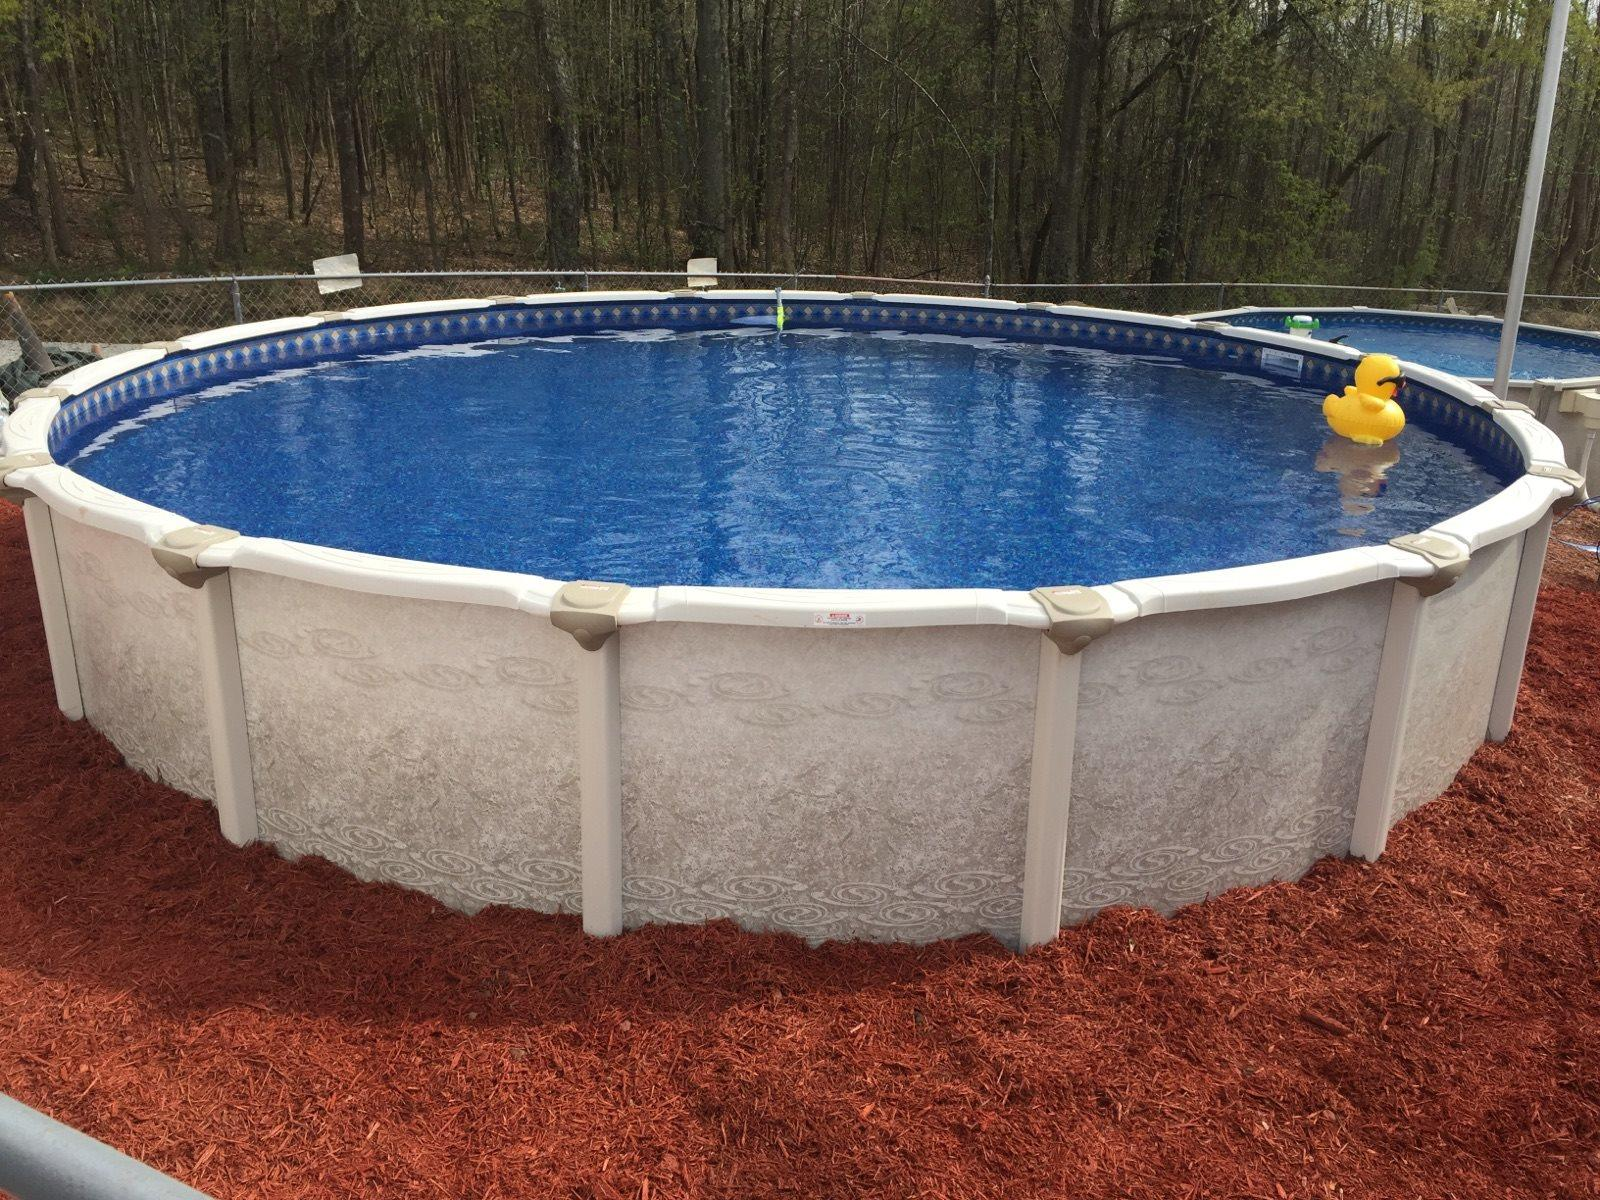 Thompson Swimming Pool Supply In Loganville Ga Swimming Pool Equipment Supplies Yellow